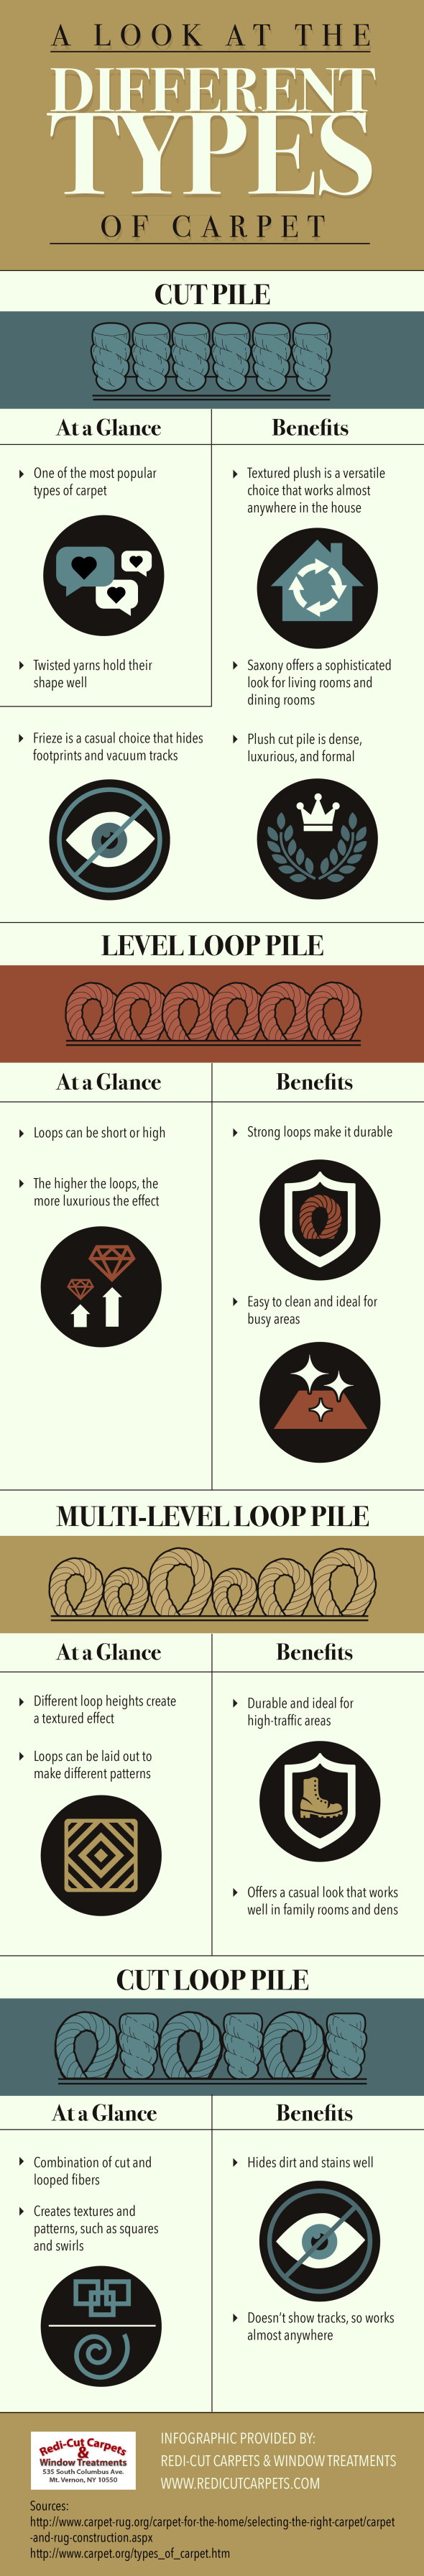 Infographic Explaining Different Types of Carpets